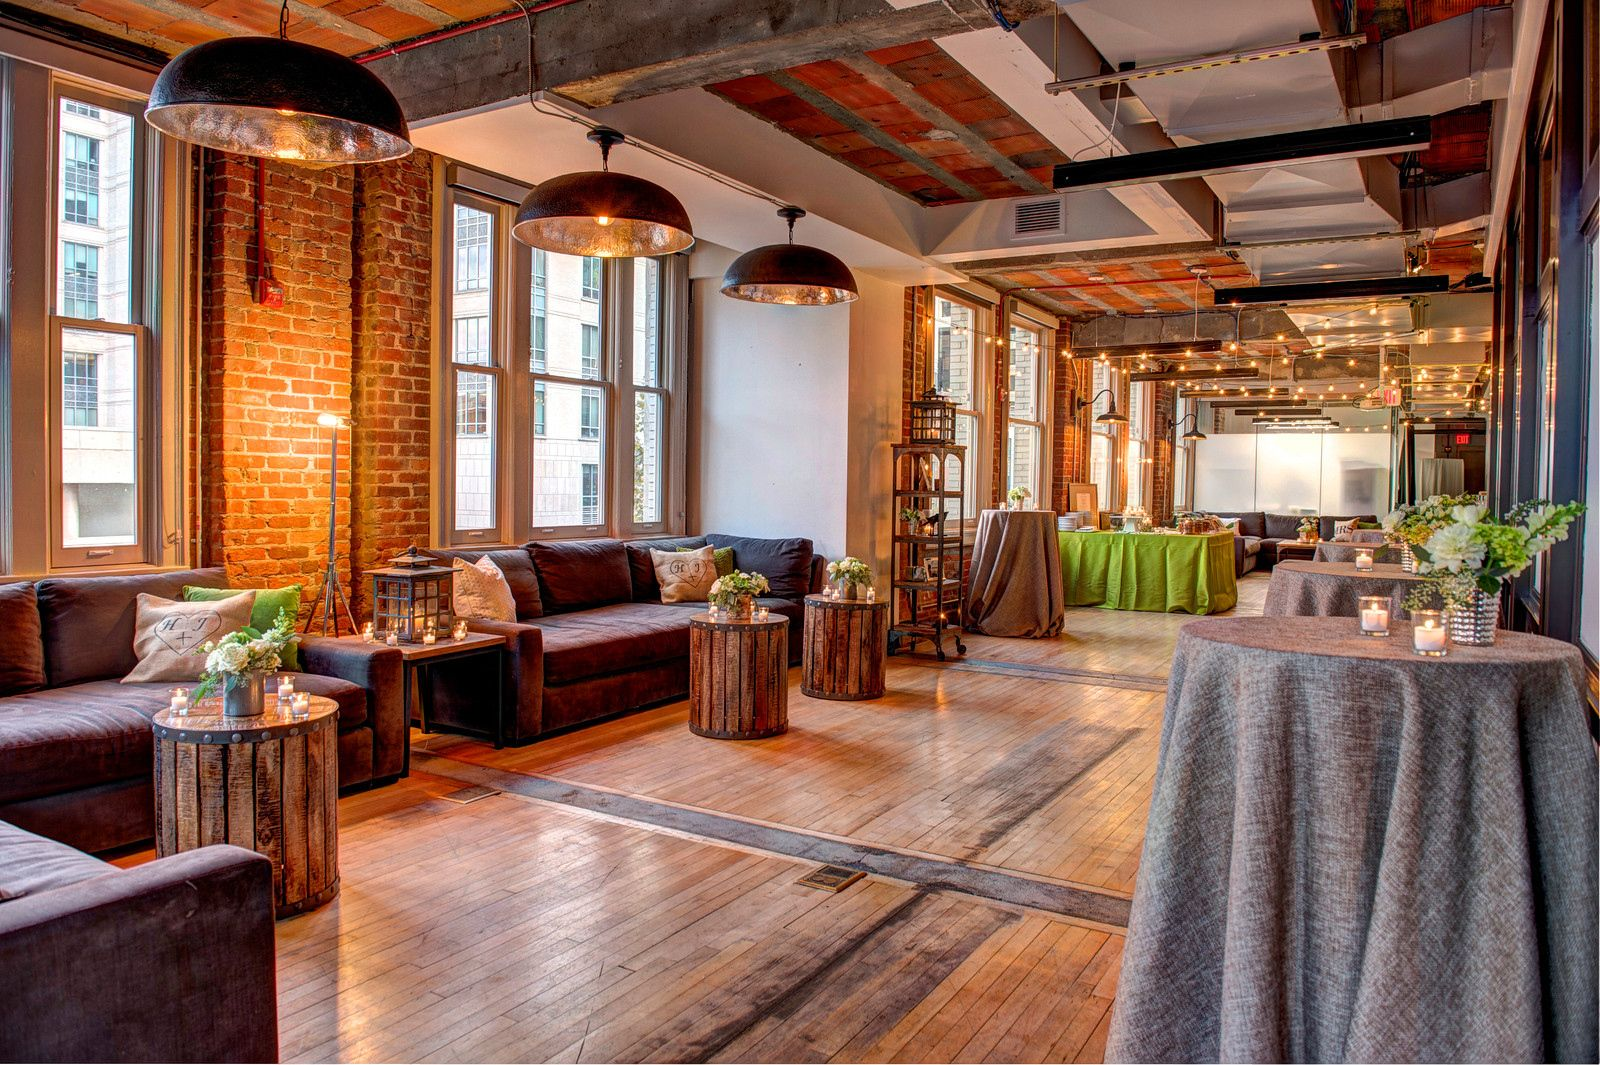 For an intimate wedding, consider The Loft at 600 F's